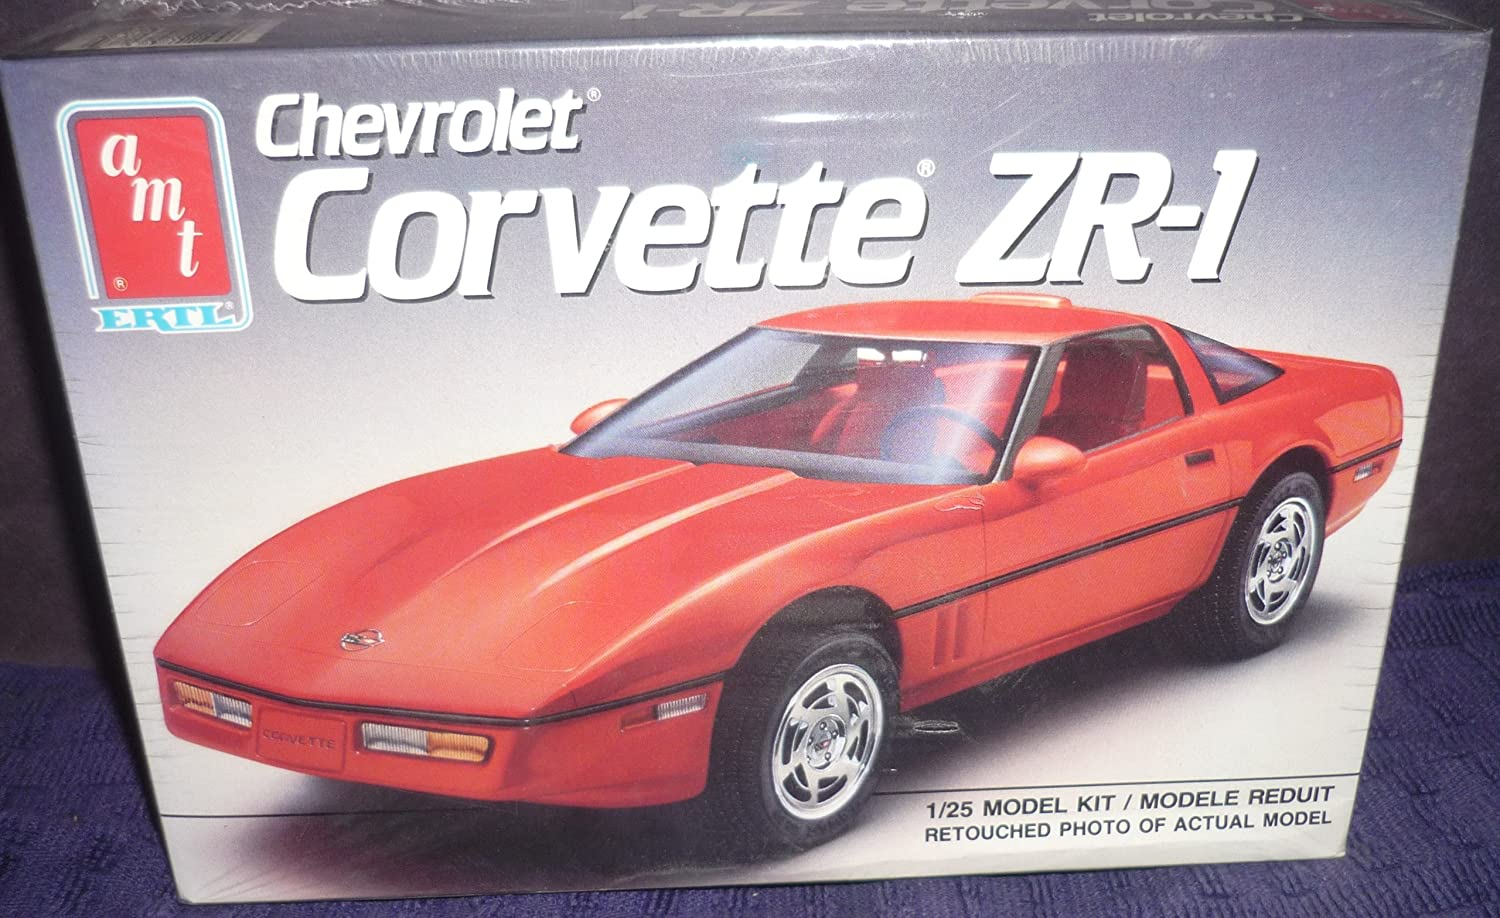 descuento 6073 6073 6073 AMT 1990 Chevrolet Corvette ZR-1 1/25 Scale Plastic Model Kit by ERTL by ERTL  caliente